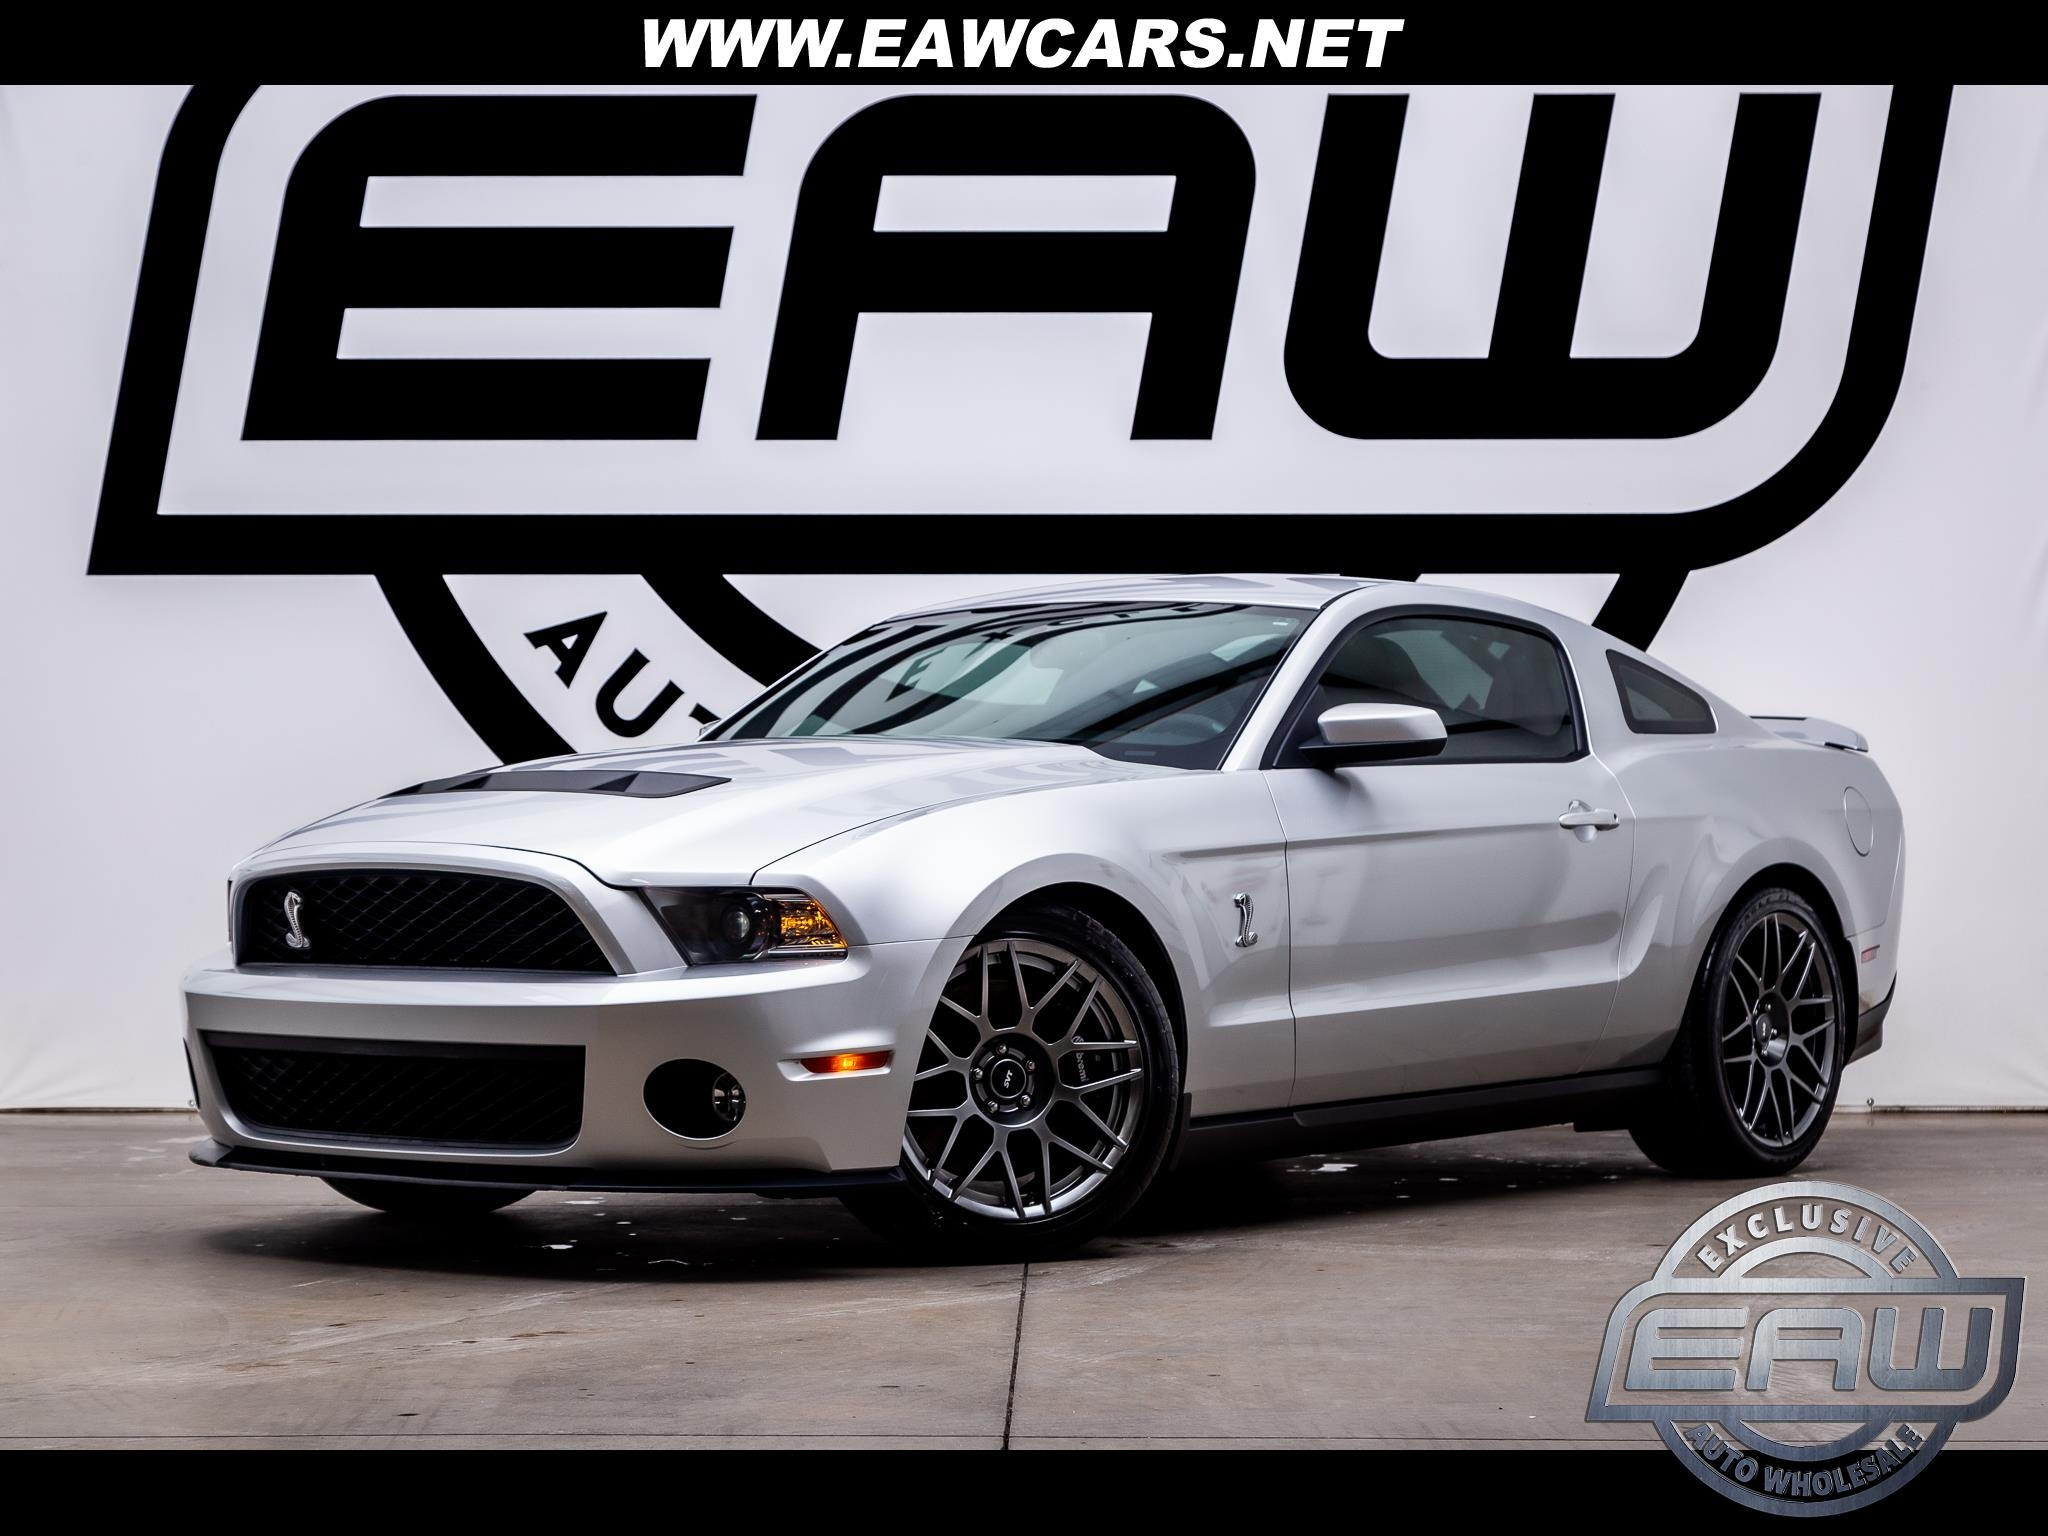 Ford Mustang 2dr Cpe Shelby GT500 2011